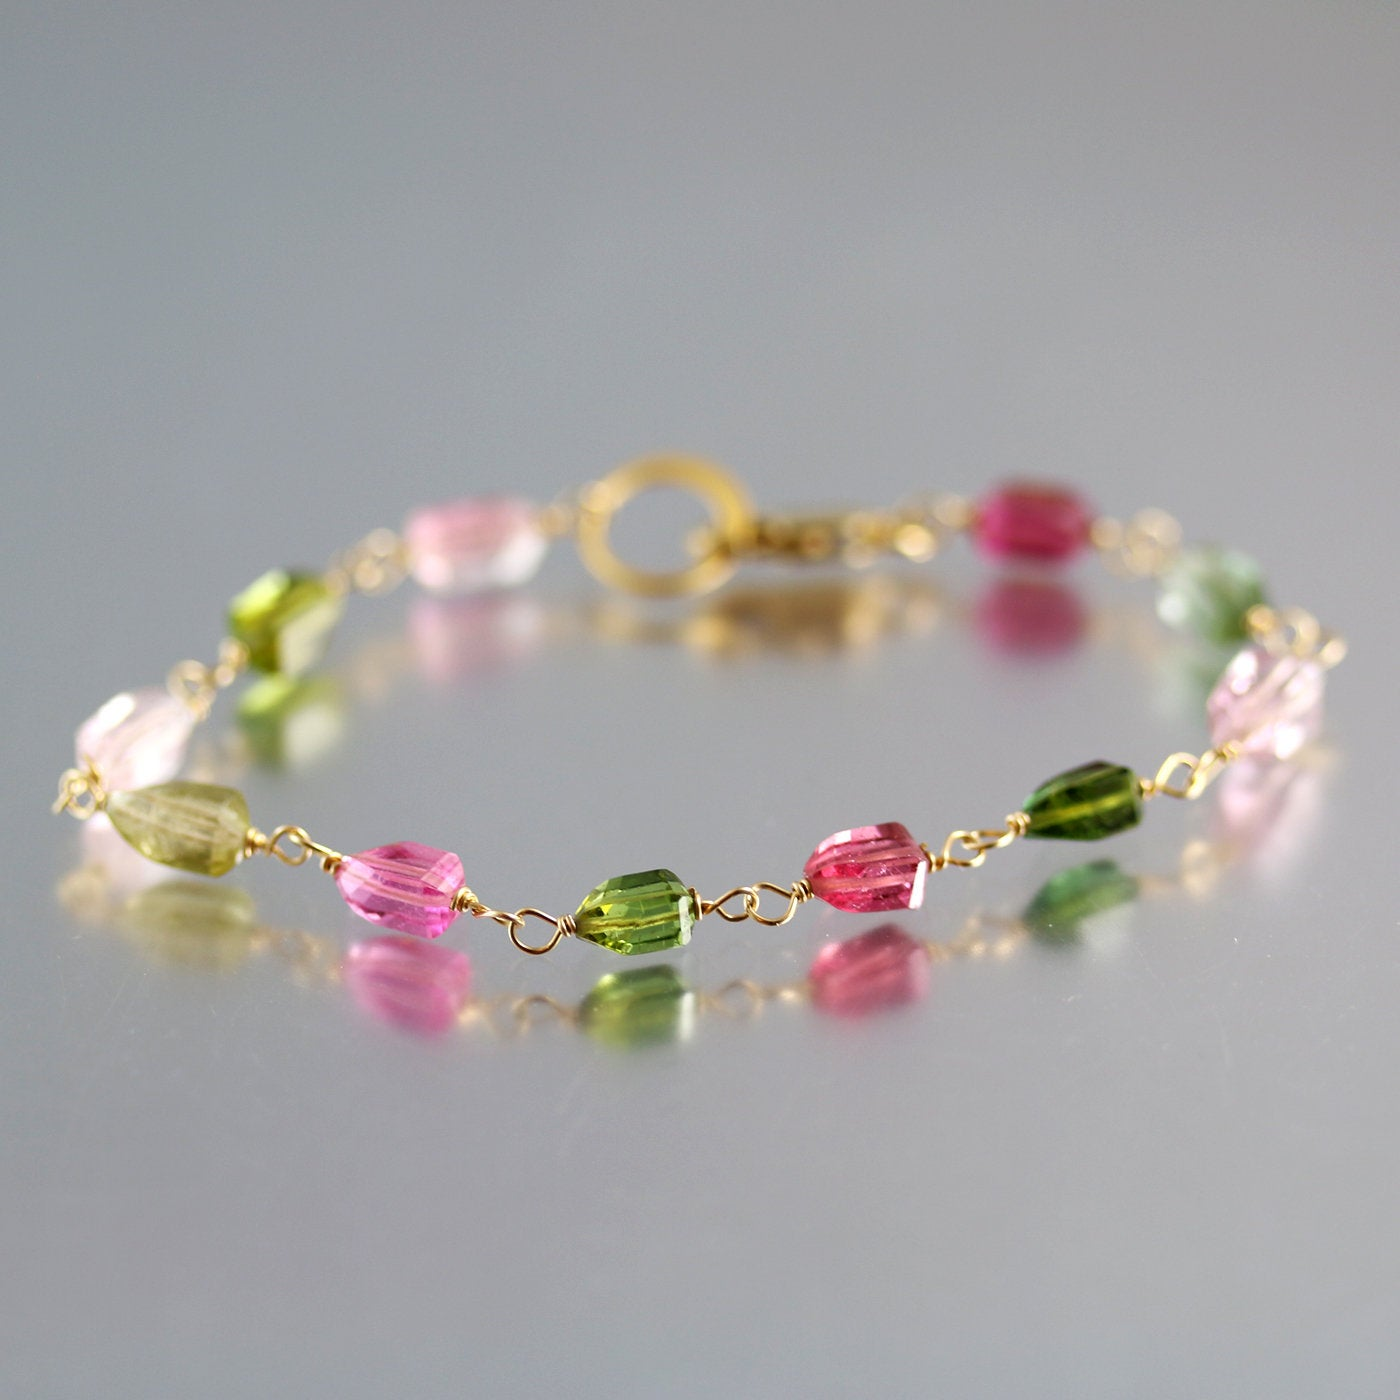 Watermelon Tourmaline Pink Green Yellow Gemstone Bracelet